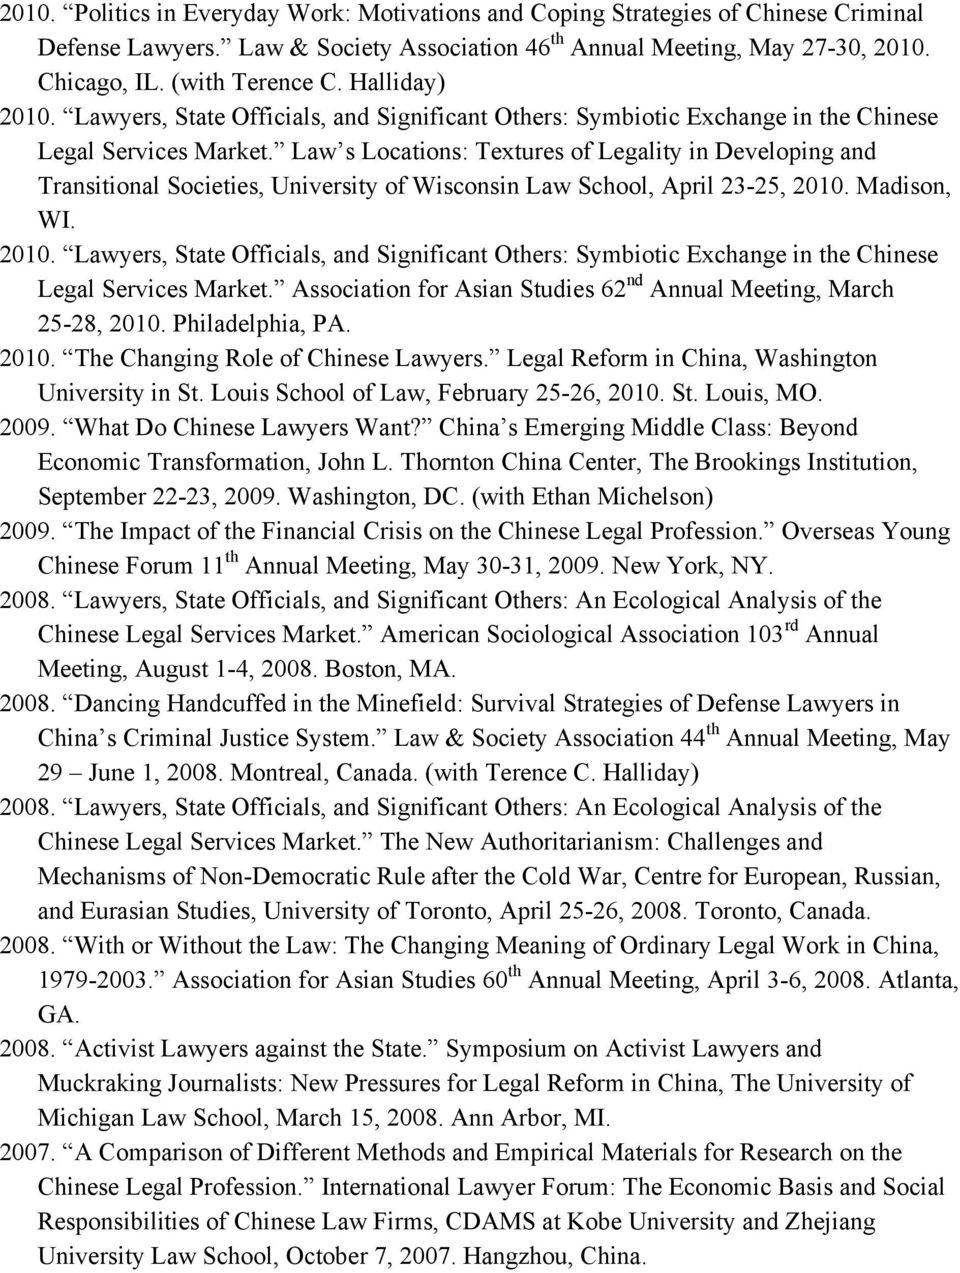 Law s Locations: Textures of Legality in Developing and Transitional Societies, University of Wisconsin Law School, April 23-25, 2010.